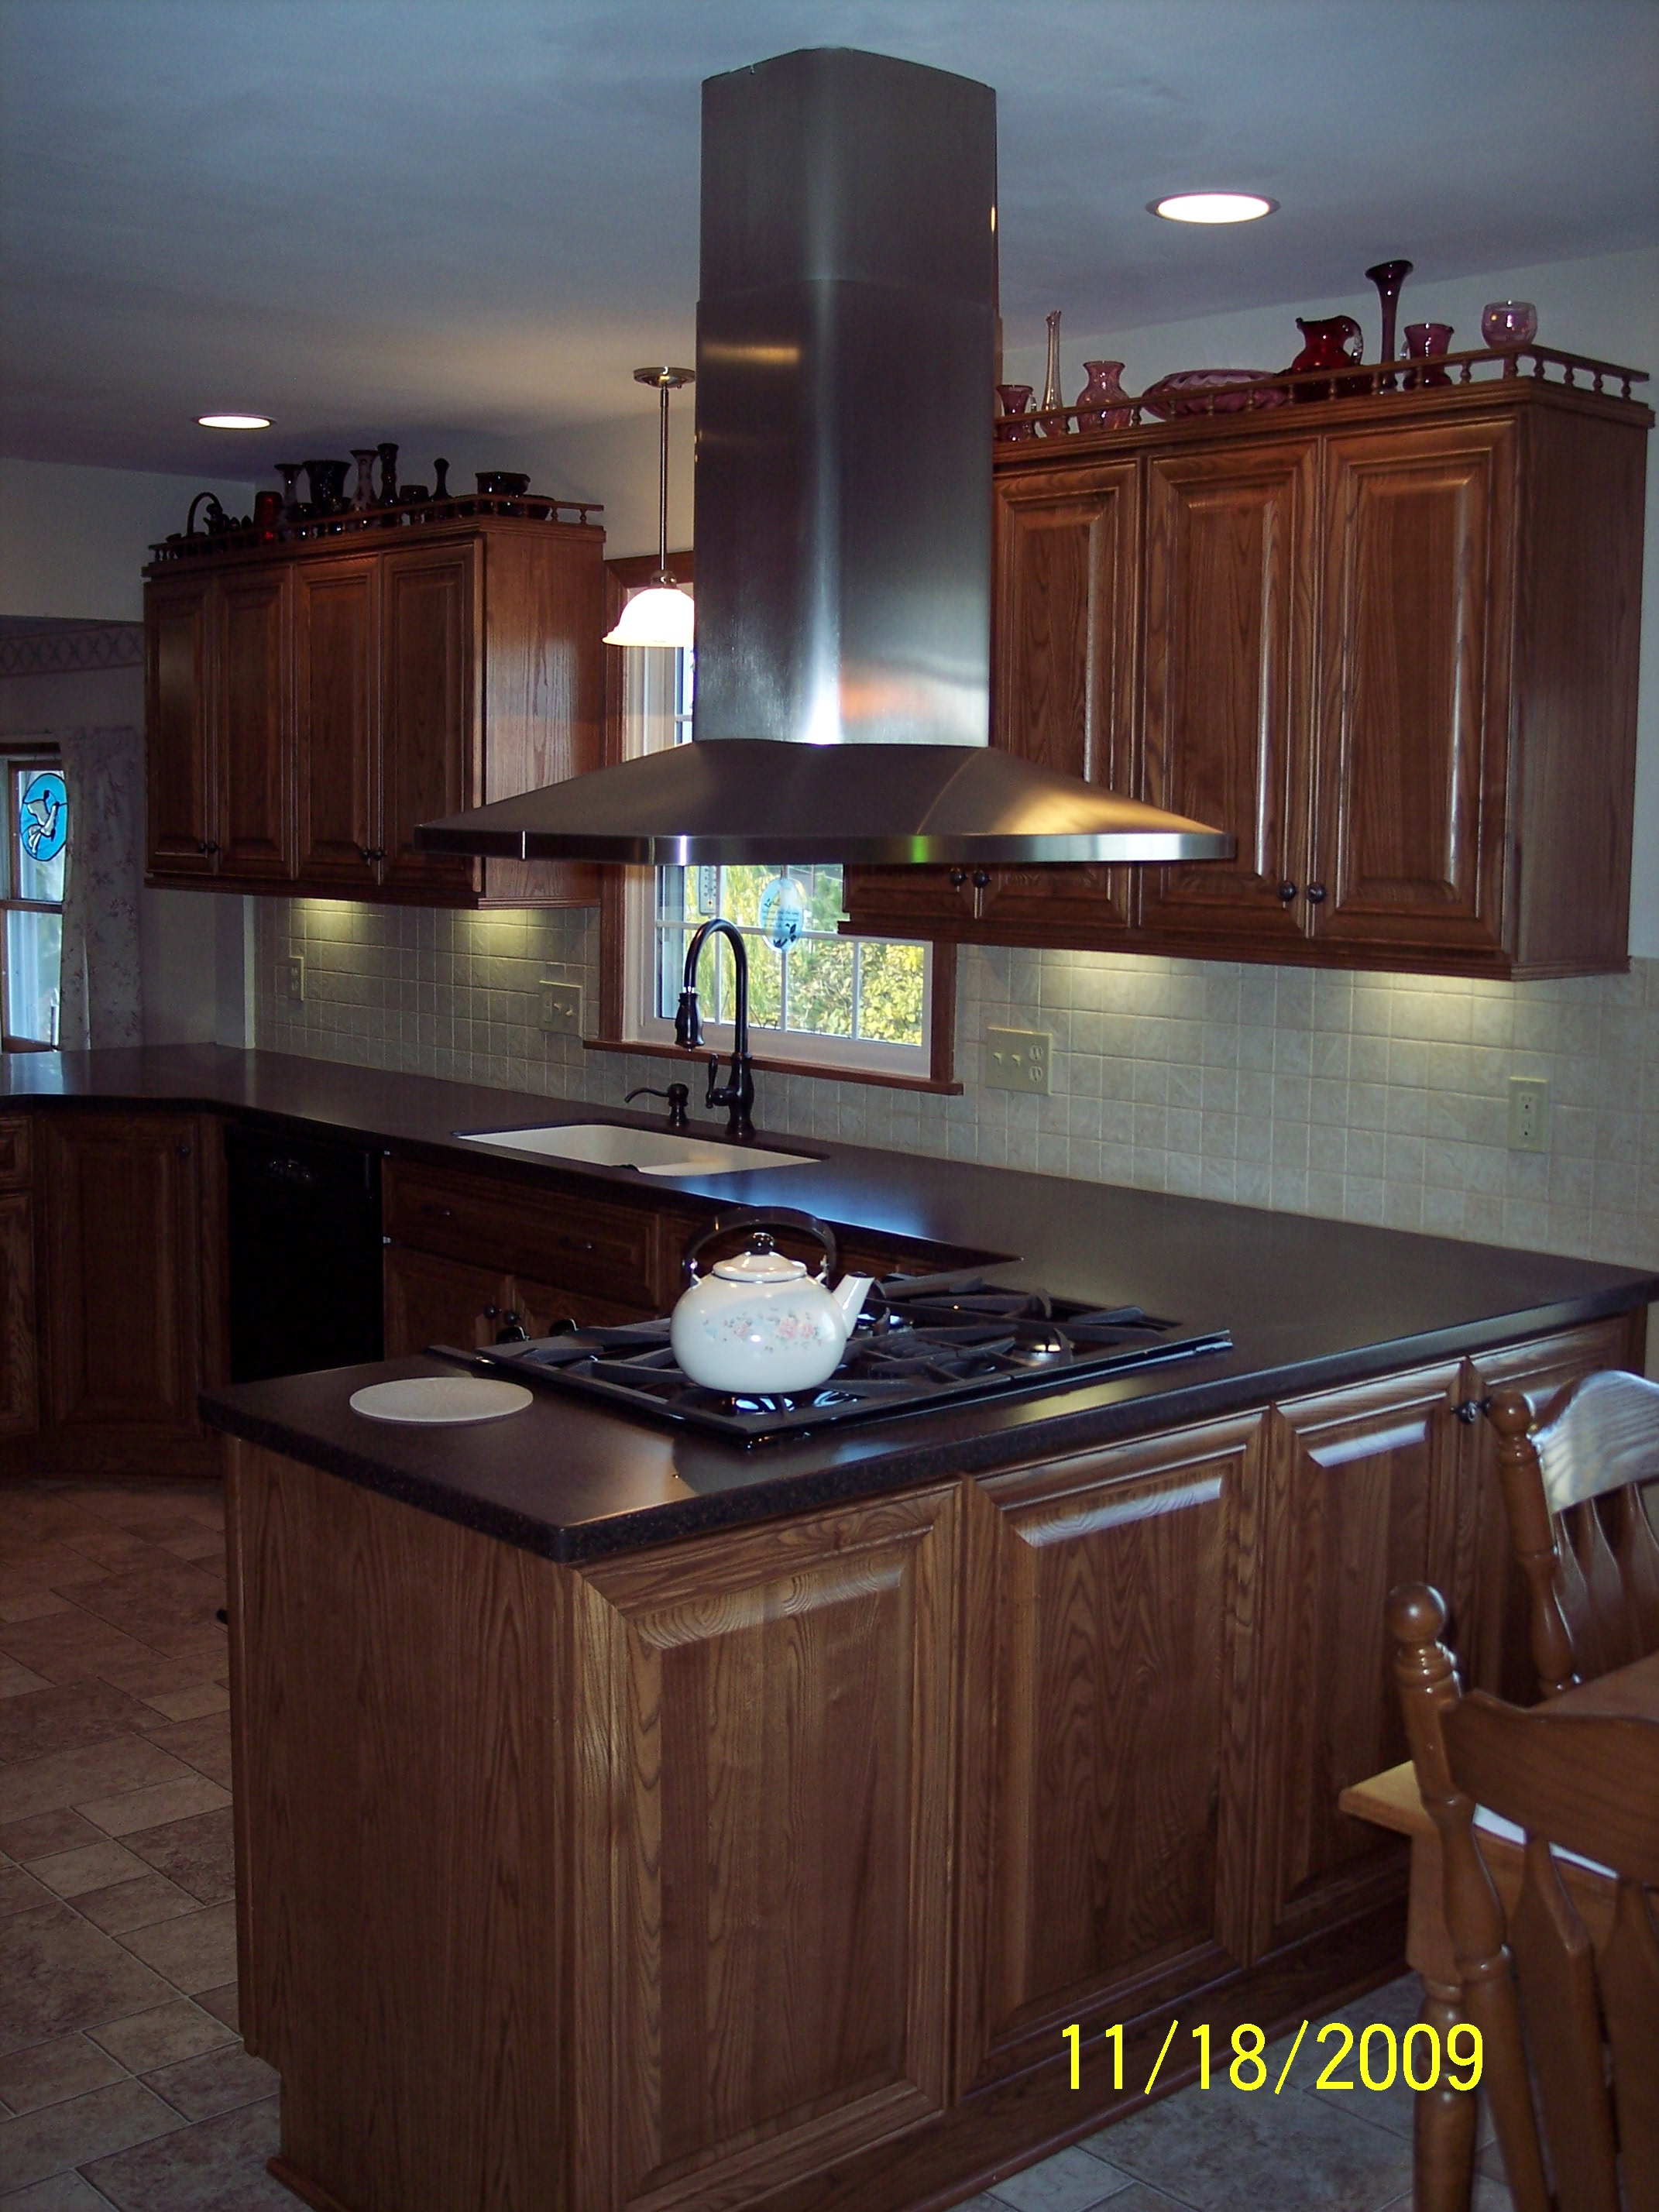 kitchen design erie pa kitchen cabinets erie pa image to u 112